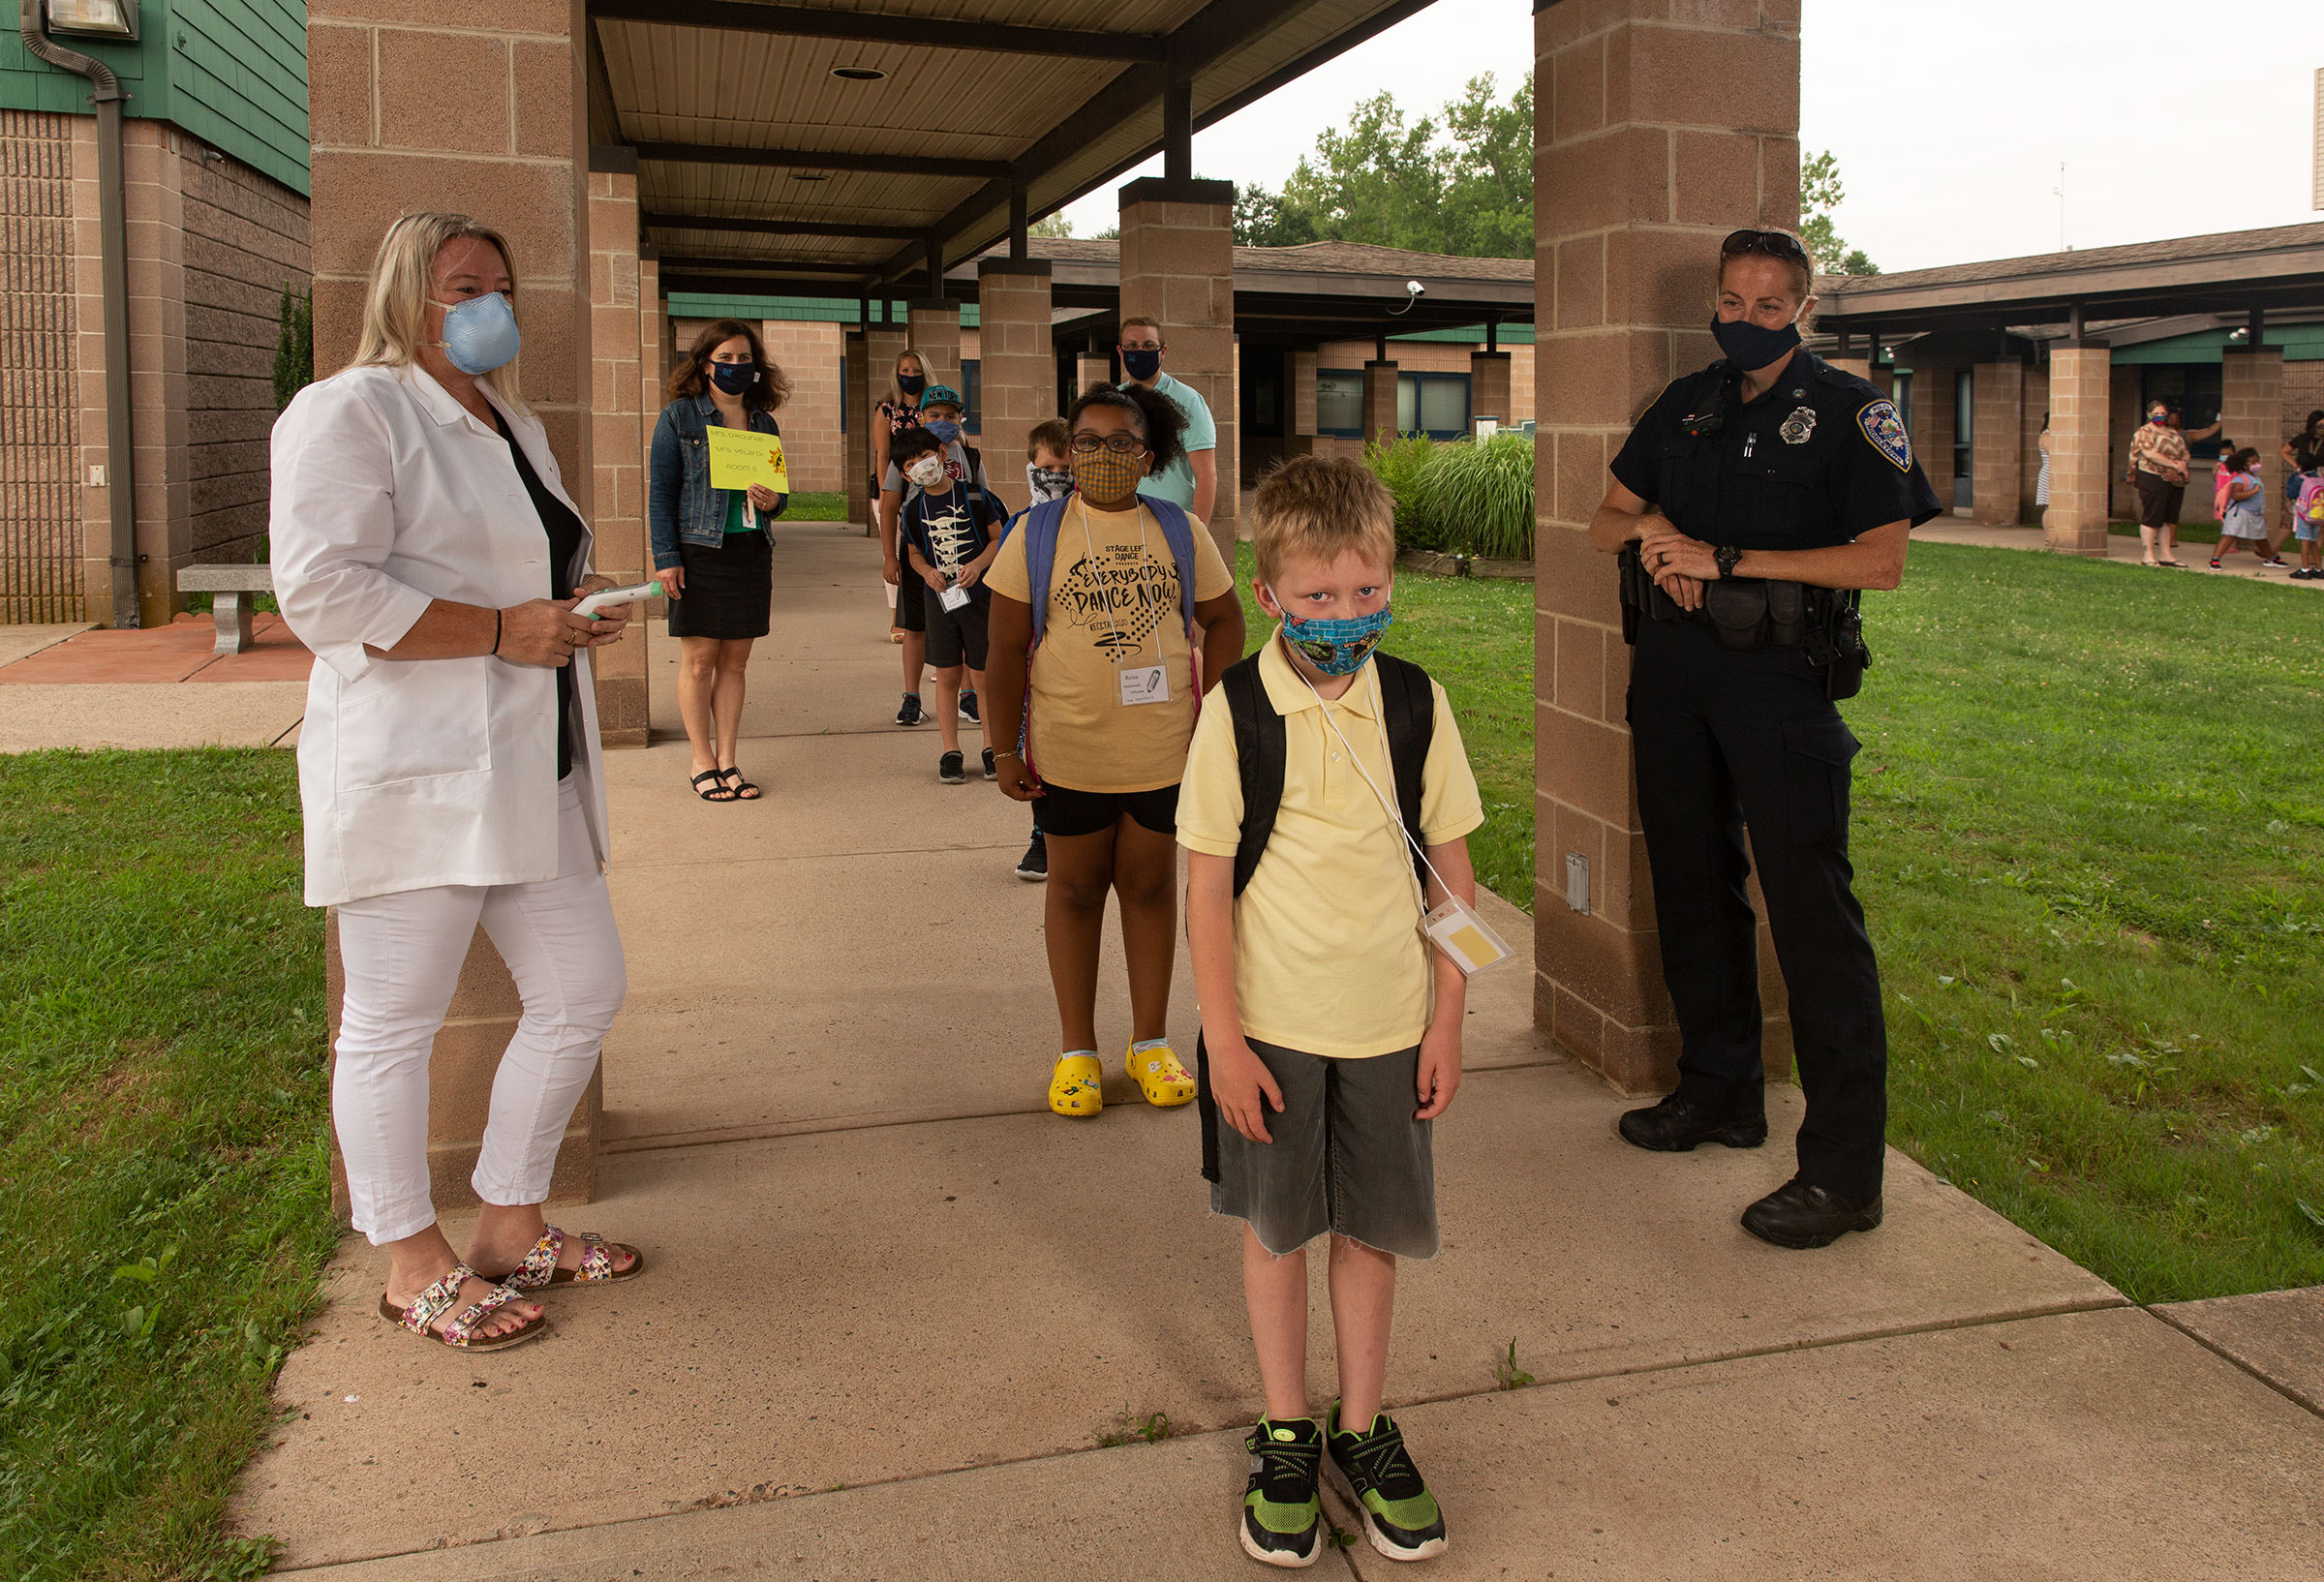 Nurse Sarah Ladd and school resource officer Kristen Tyrseck ensure kids keep a safe distance apart as they enter Wesley Elementary School in Middletown, Conn., in July.